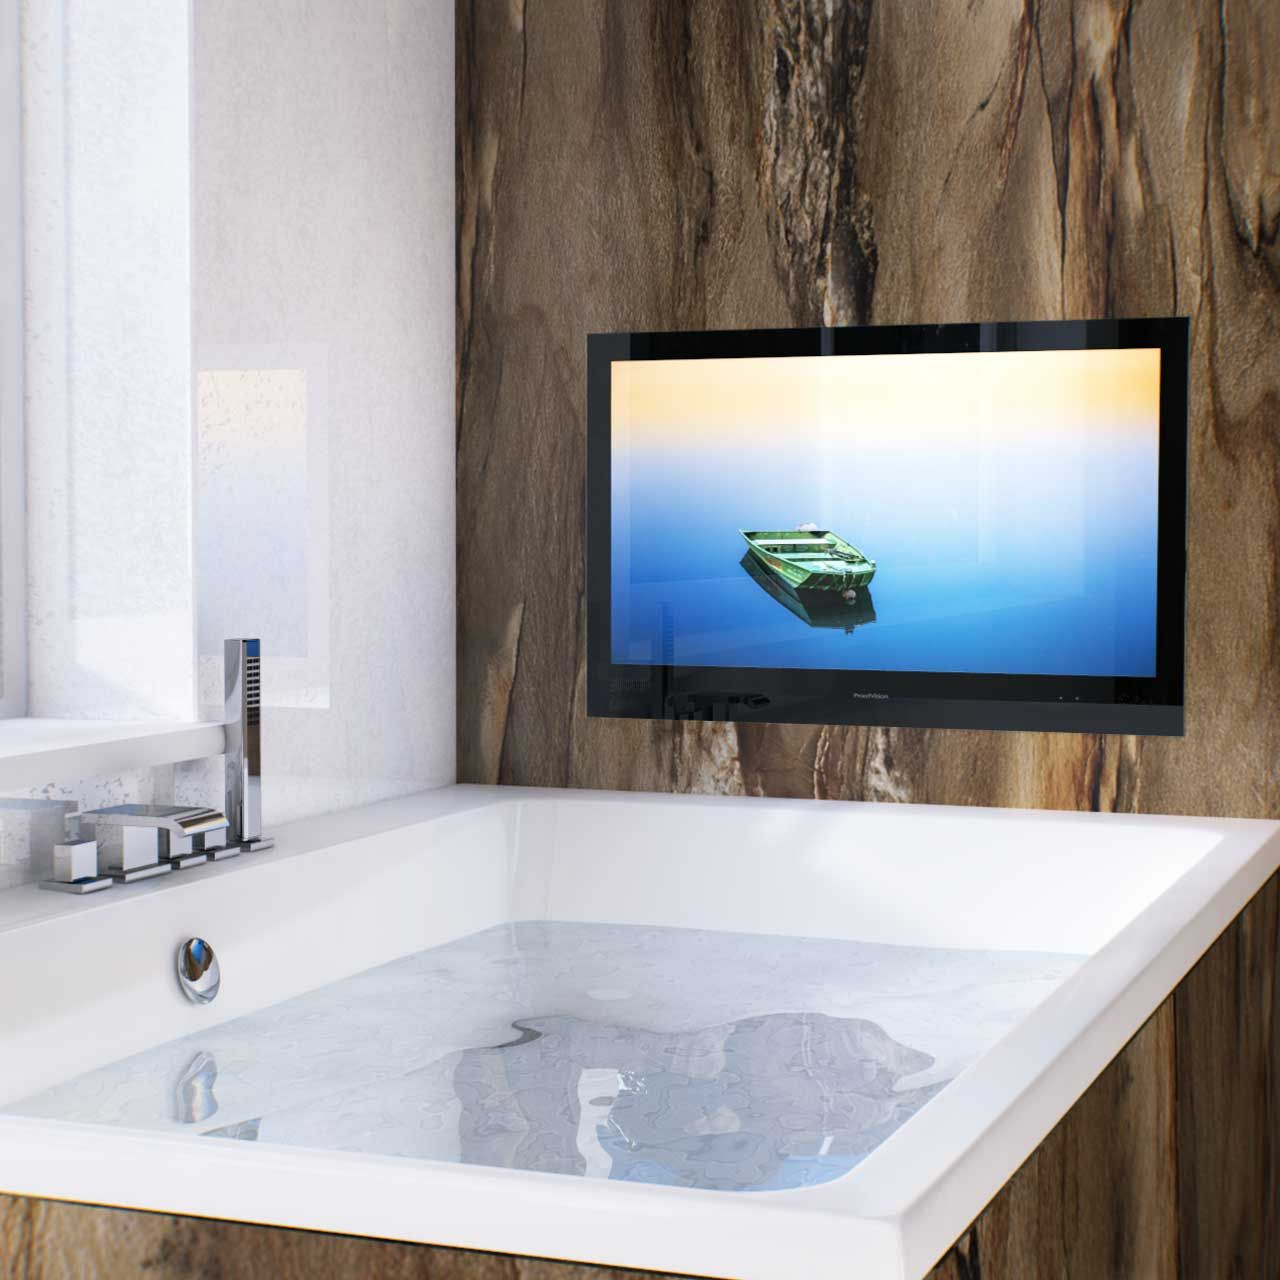 Enjoy Some R R In Your New Bathroom With This 32 Inch Stylish Black Bathroom Tv Bathroom Televisions Tv In Bathroom Black Bathroom